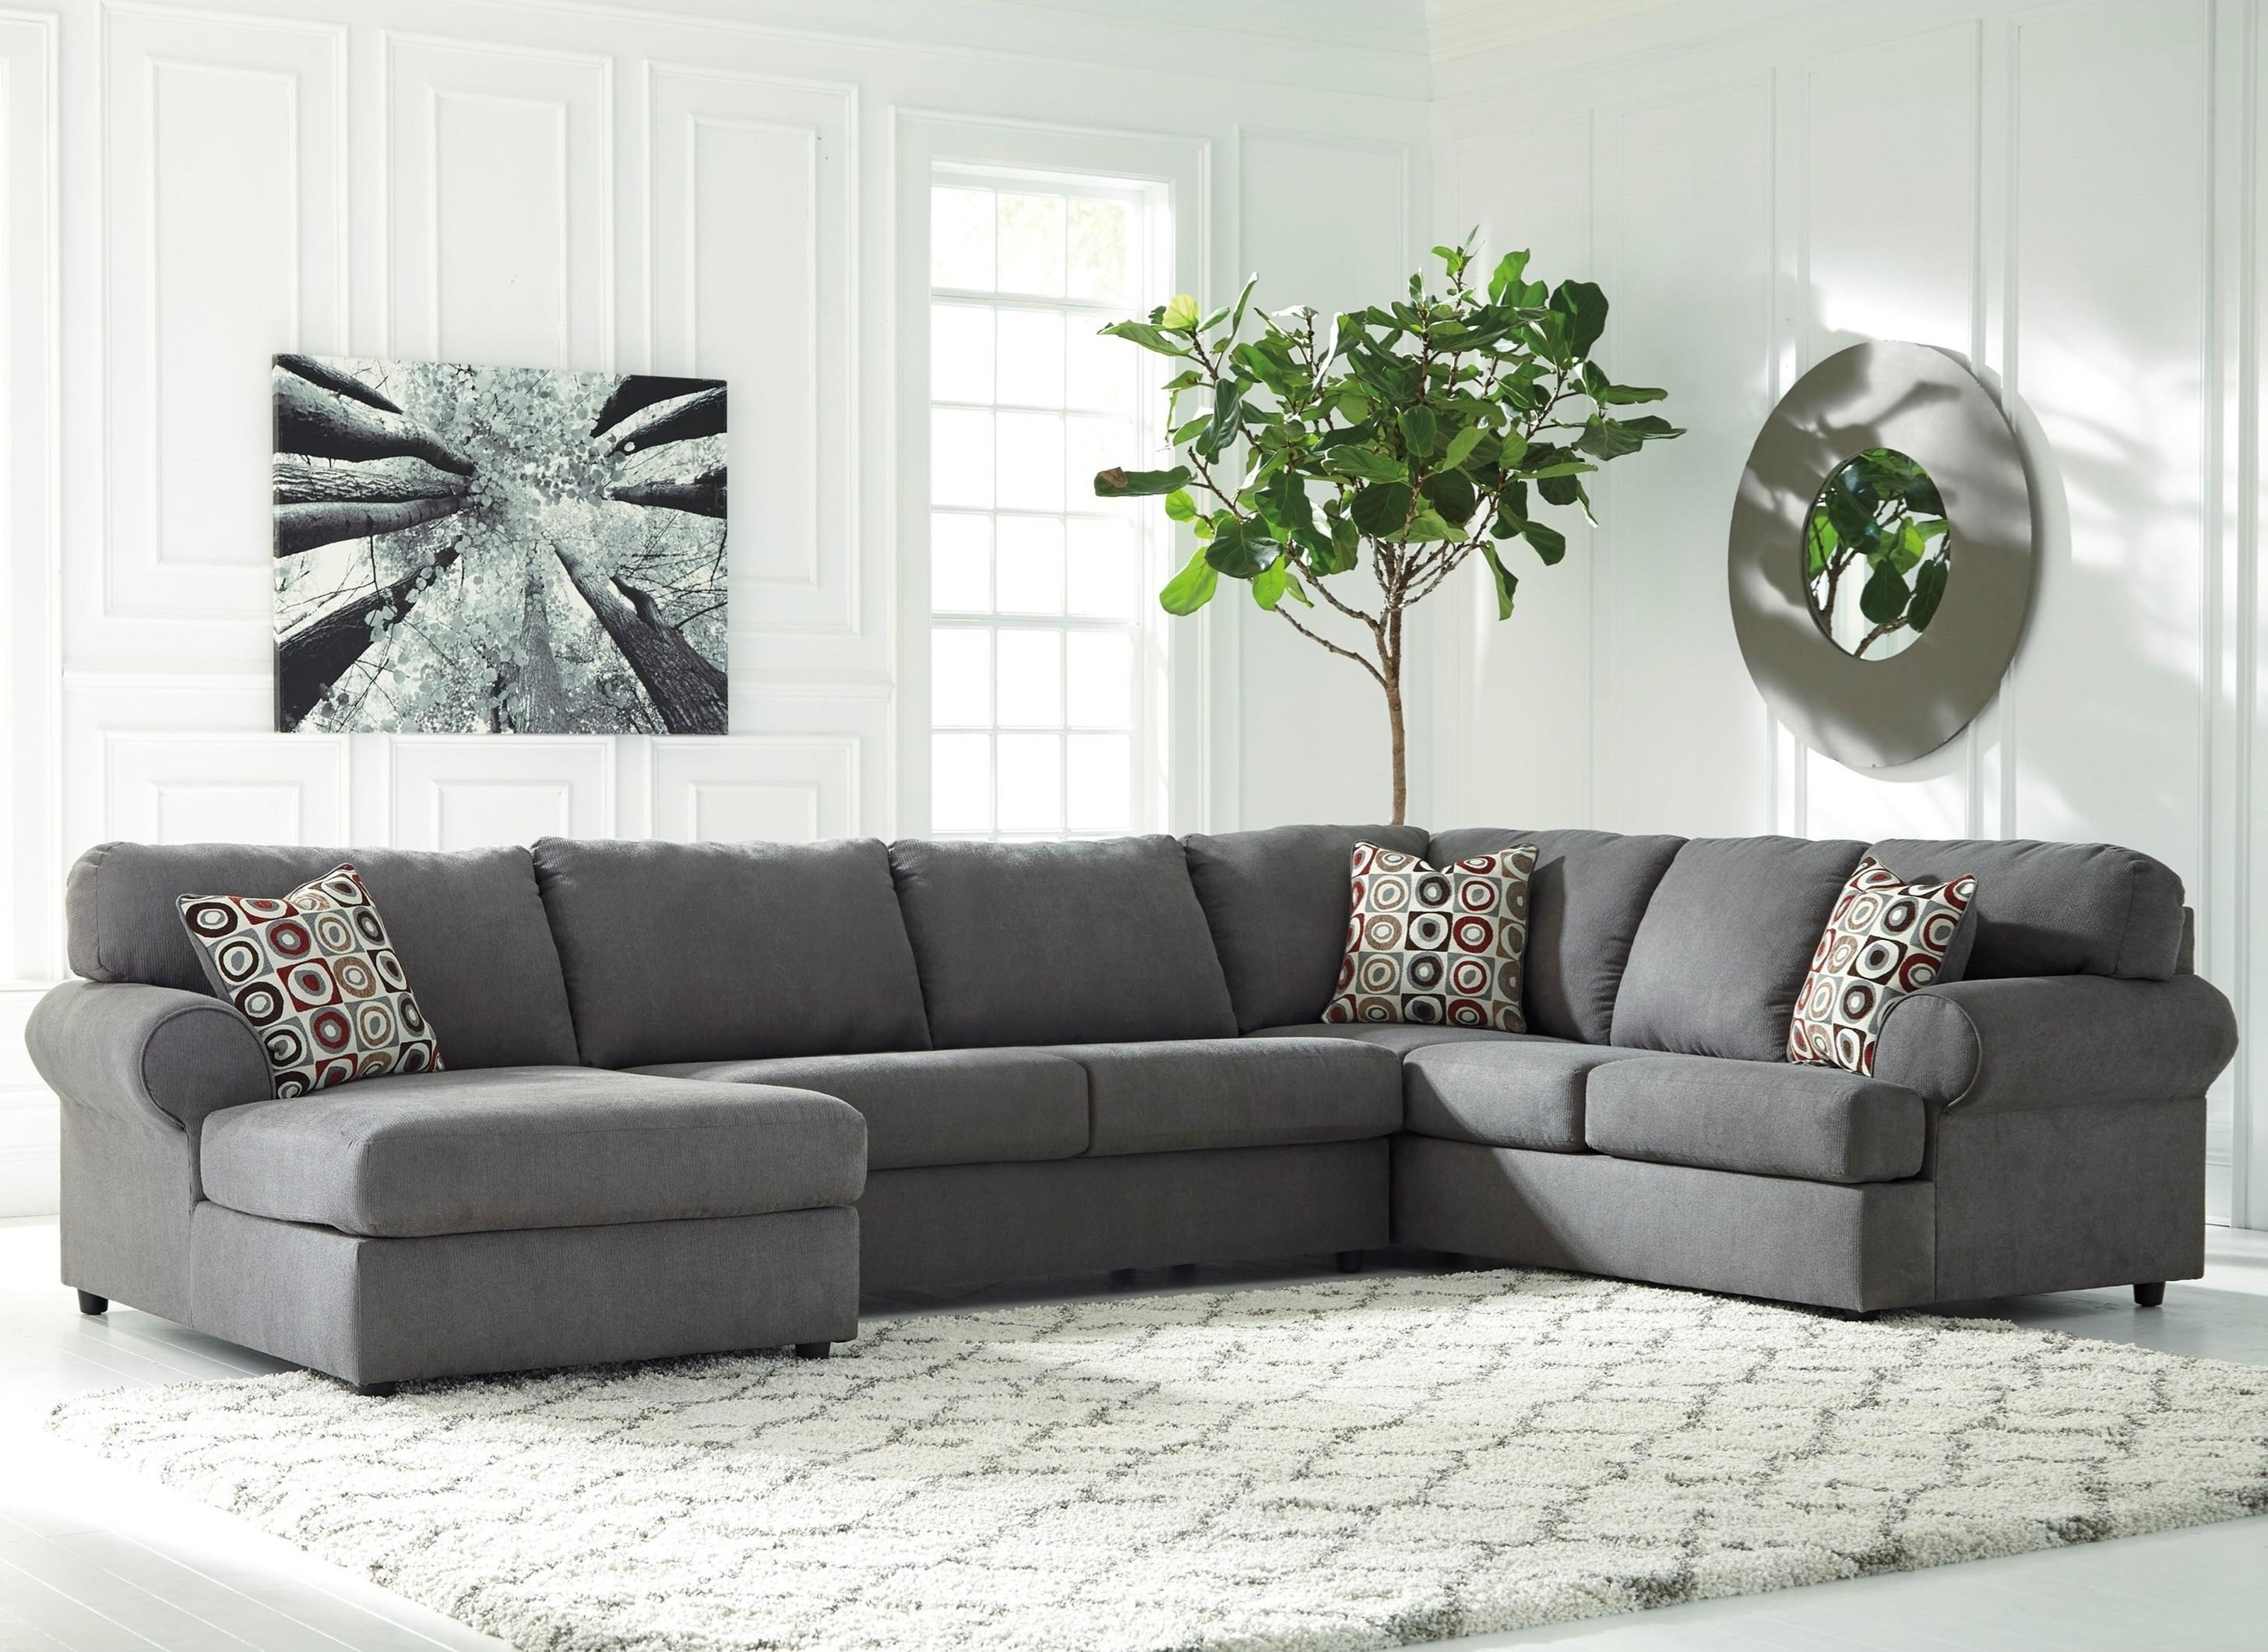 3 Piece Sectional - Locsbyhelenelorasa in Malbry Point 3 Piece Sectionals With Laf Chaise